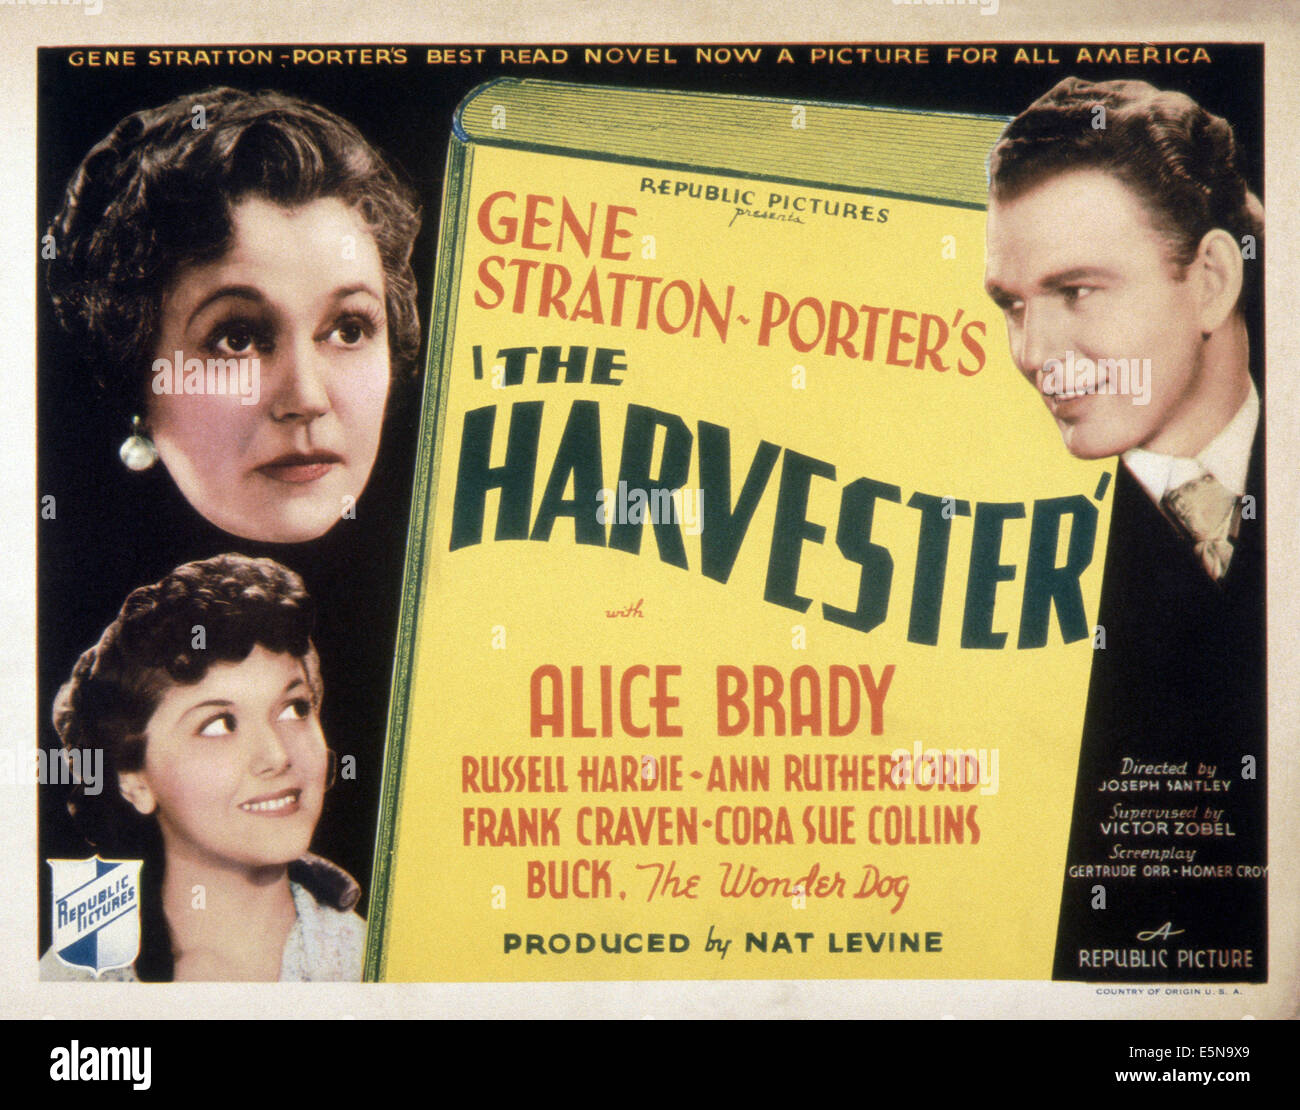 THE HARVESTER, top from left: Alice Brady, Russell Hardie, Ann Rutherford (bottom), 1936 - Stock Image